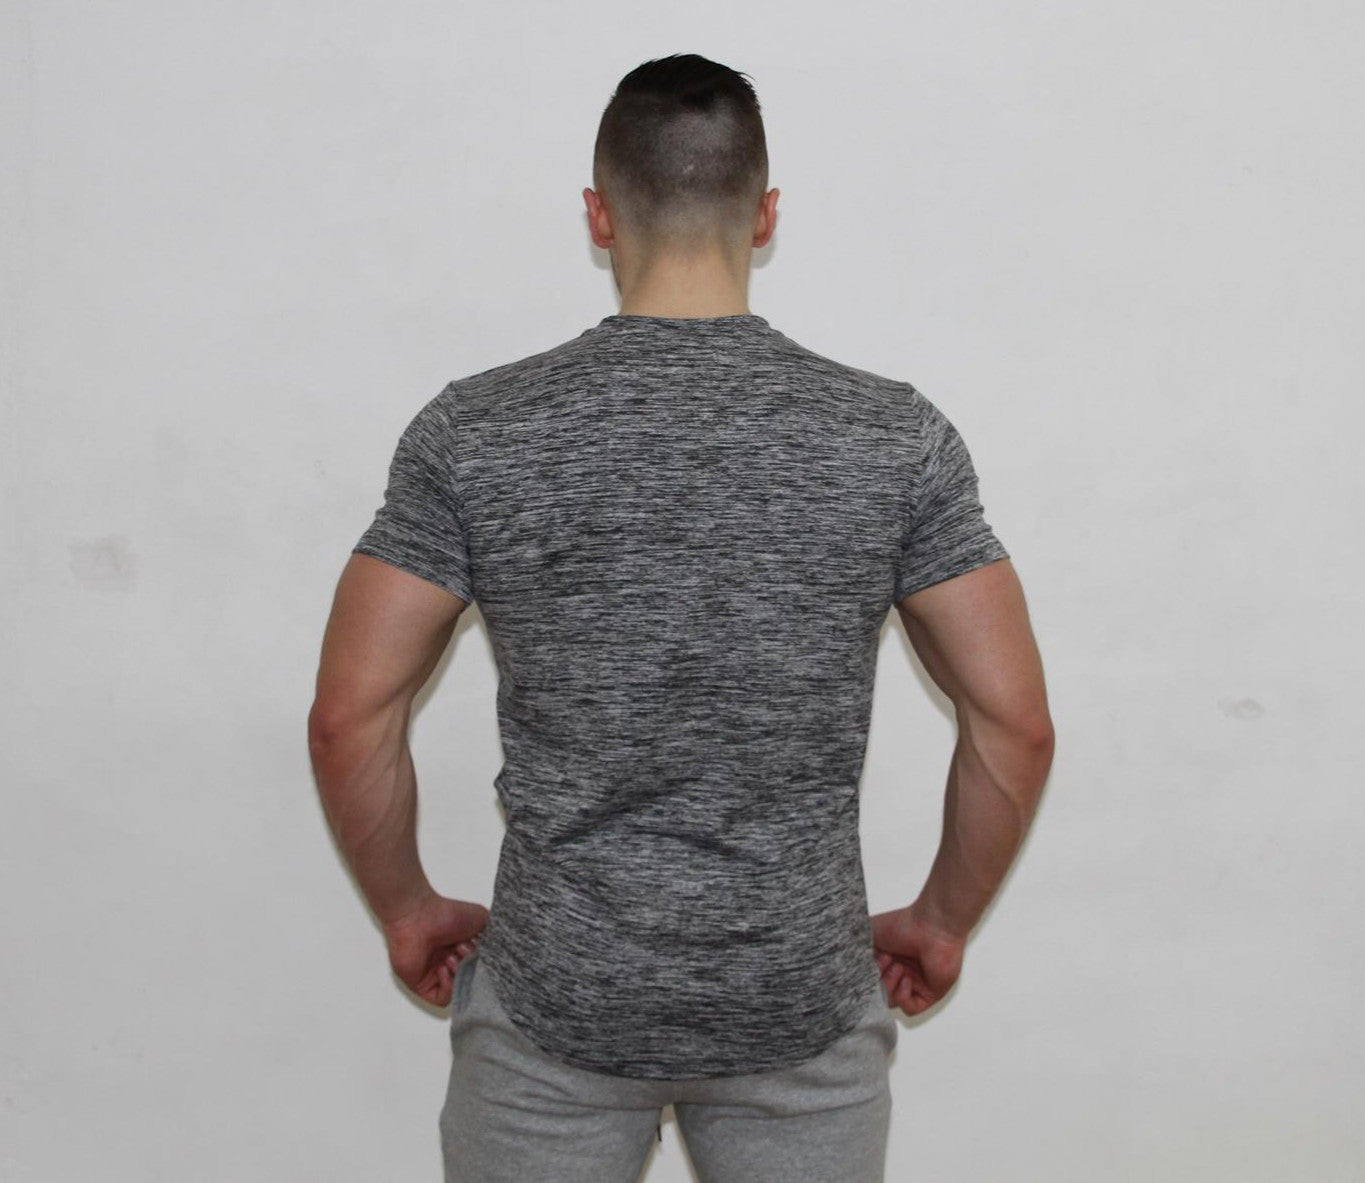 GFLEX Muscle Fit Curved Hem Tee